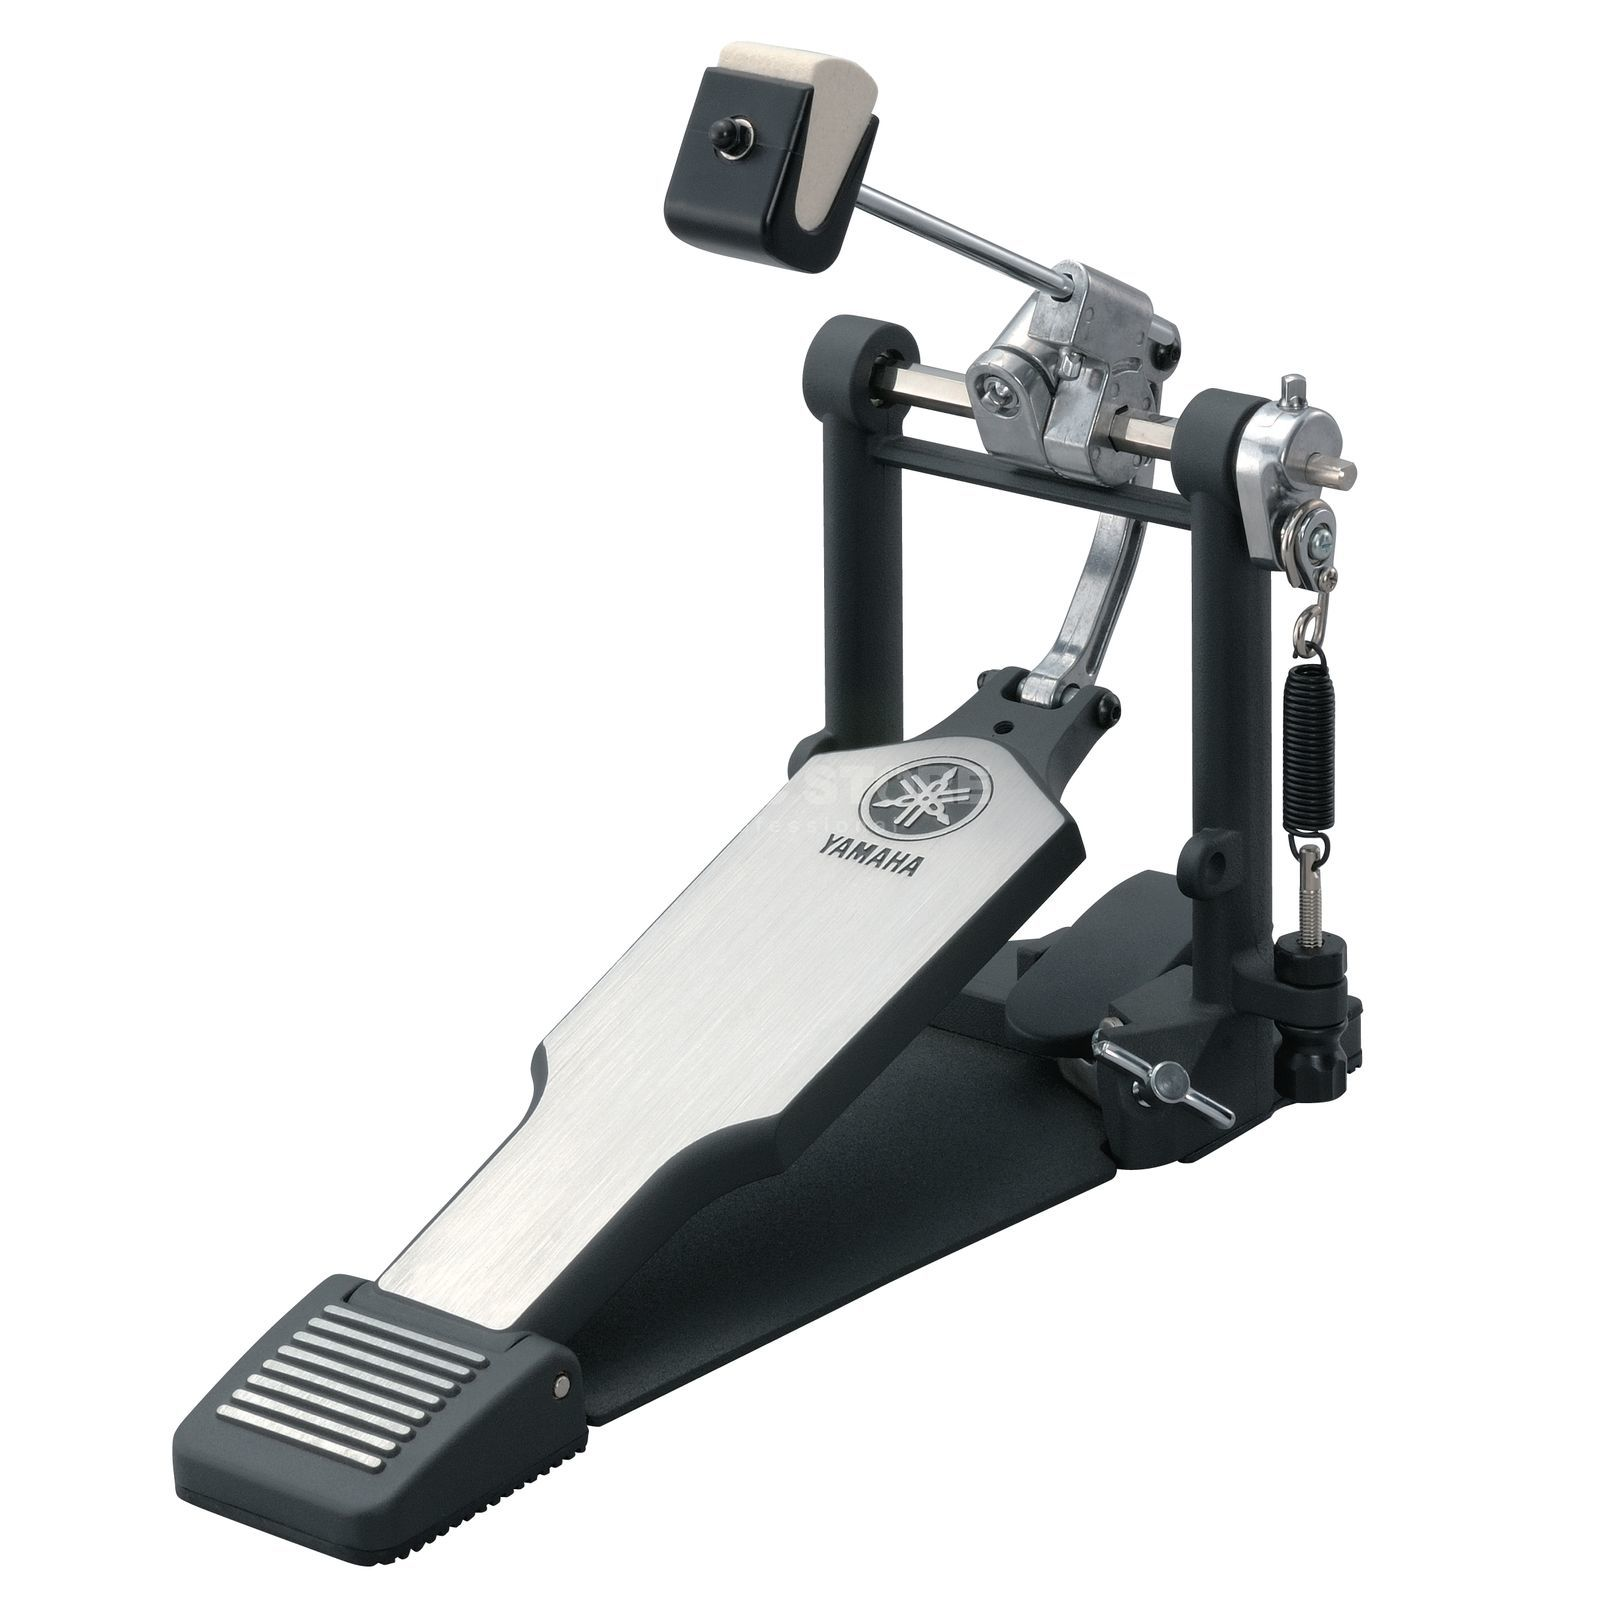 Yamaha Kick Pedal FP9500D, Direct Drive Изображение товара